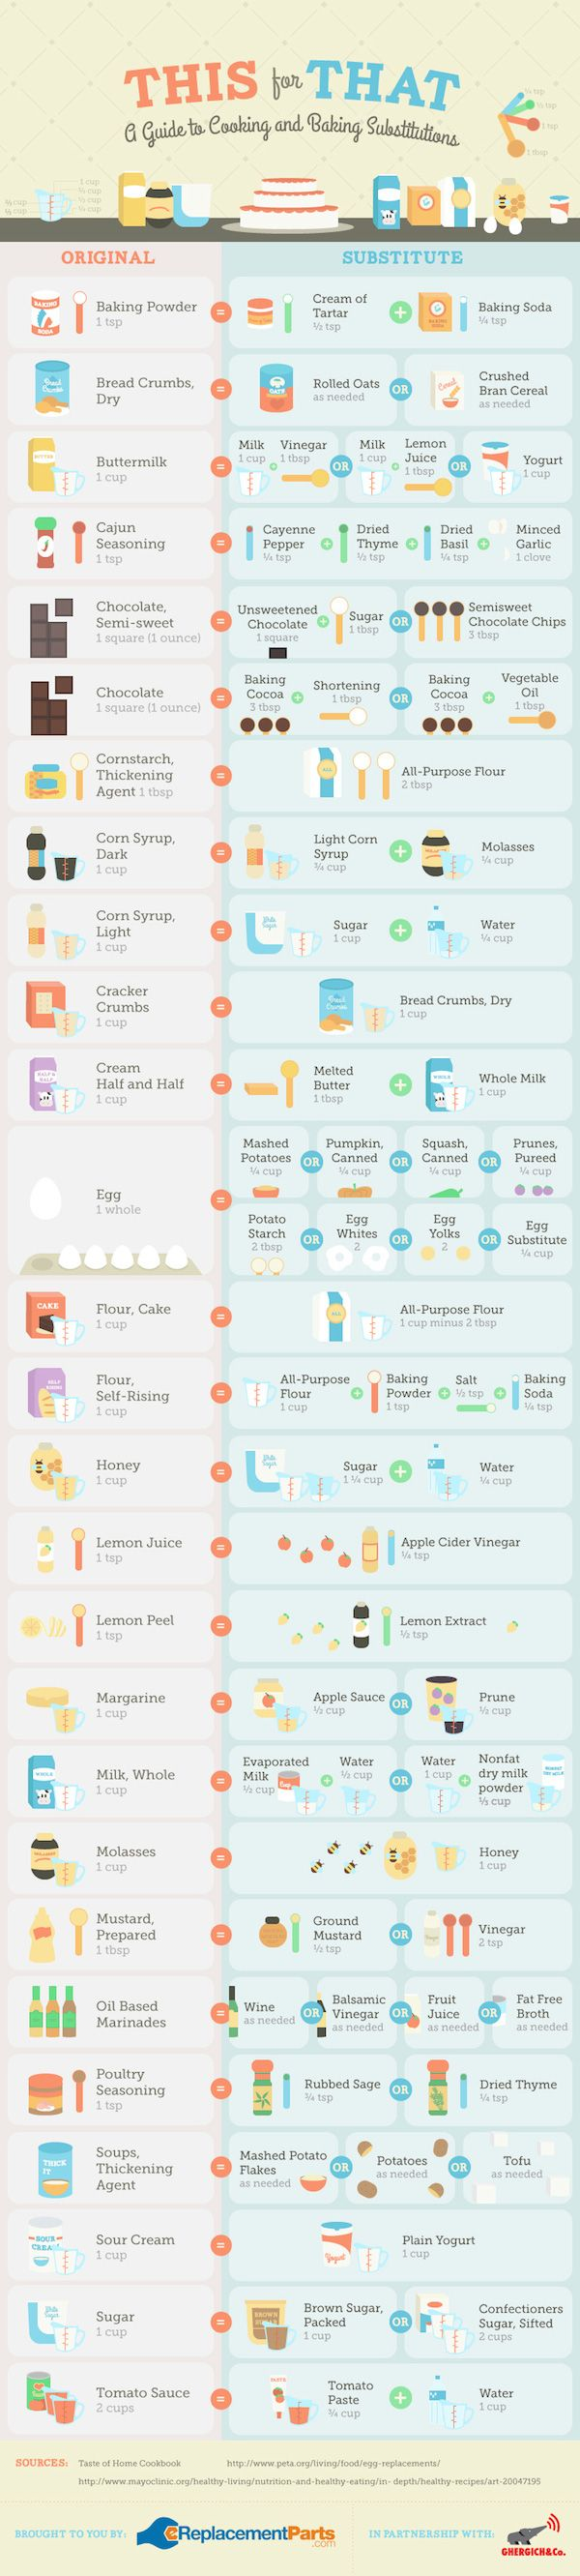 Buttermilk Substitute + 26 More This-for-That Swaps - so handy!: Baking Substitute, Ingredients Substitute, Cooking And Baking, Cheat Sheet, Kitchens Cheat, Baking Substitutions, Infographic, Cooking Substitute, Substitute Charts